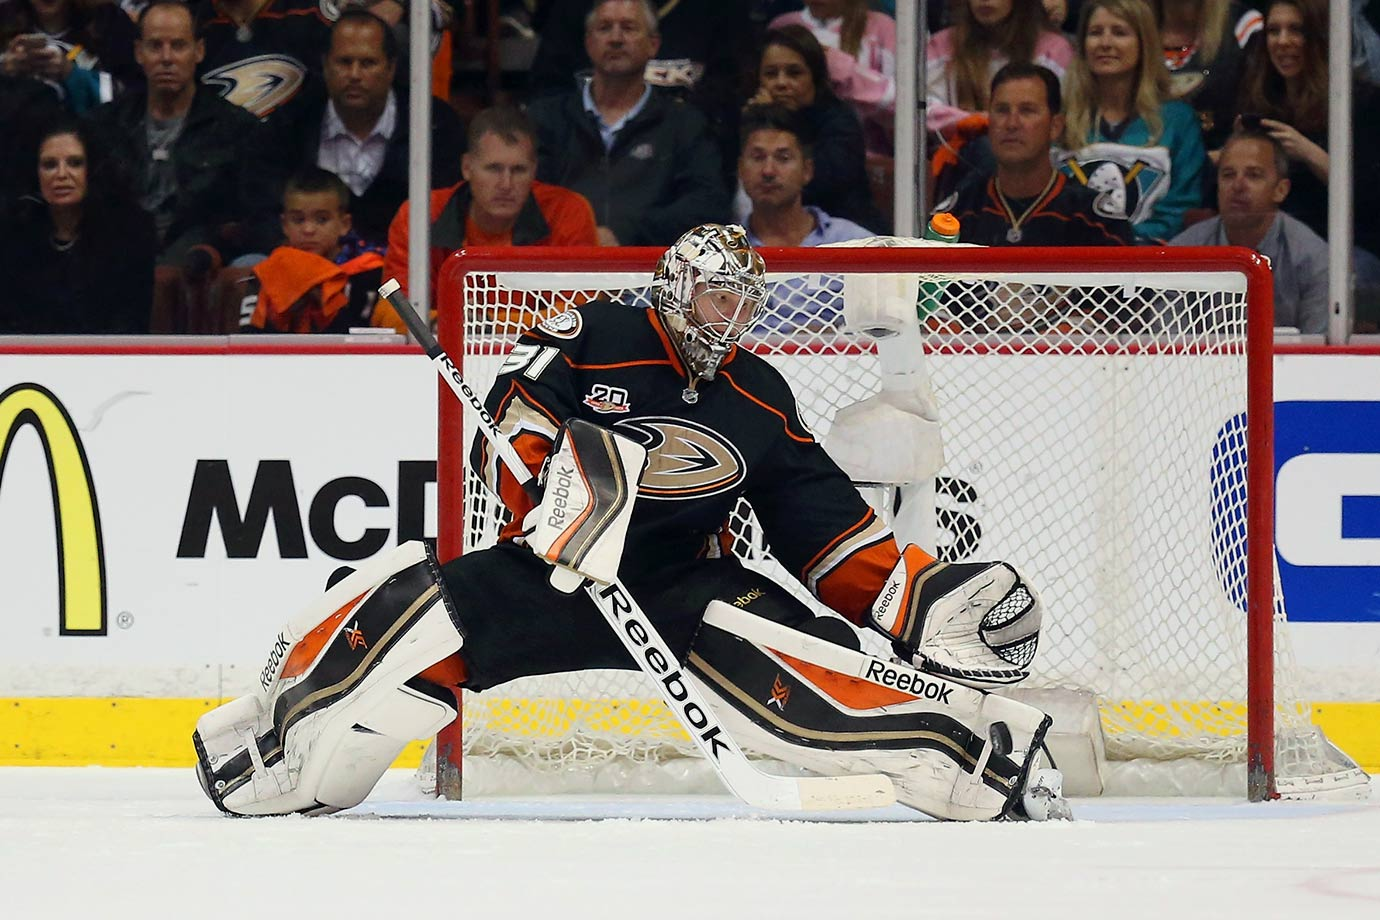 Andersen had gone in the draft once (187th in 2010), but didn't see a place for himself in Carolina's crowded system. He returned to the pool in 2012, and the Ducks grabbed him with the third rounder (No. 87) they got from Vancouver for Max Lapierre and MacGregor Sharp on Feb. 28, 2011. The Danish keeper made an impact, winning 49 of his first 66 games—the highest rate of success for a rookie since Montreal's Bill Durnan in 1943-45.